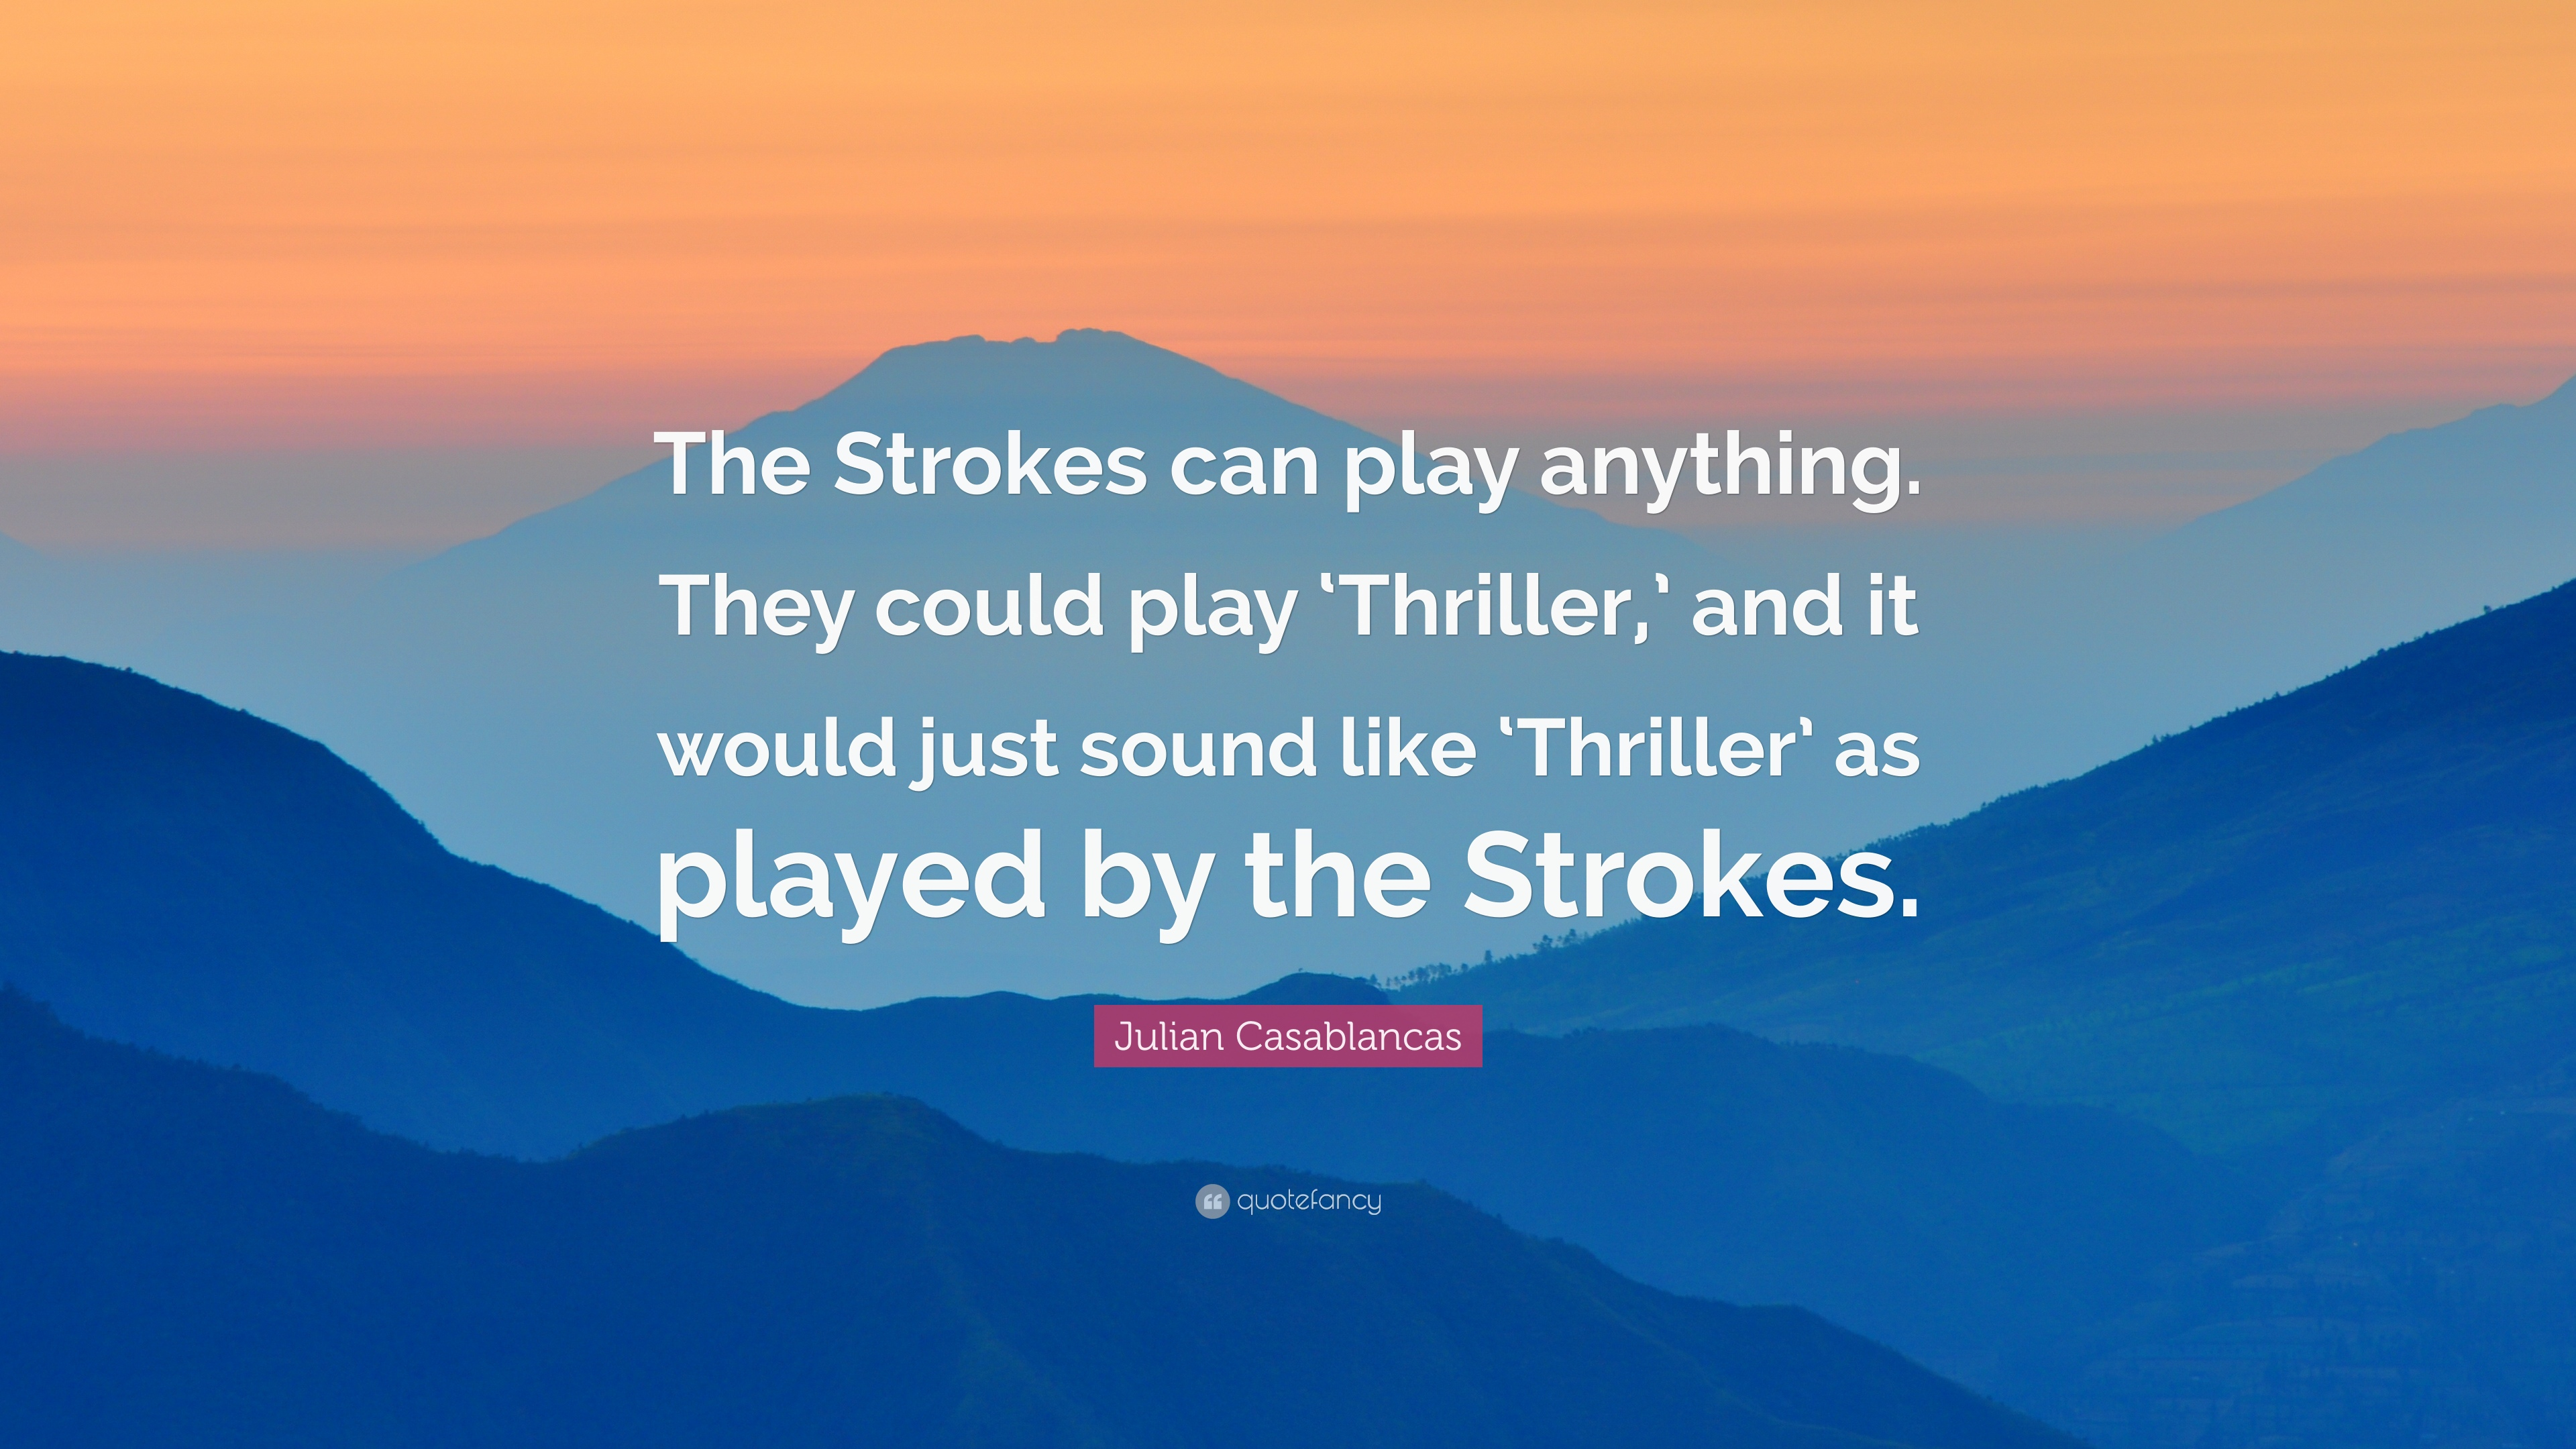 Julian casablancas quote the strokes can play anything they could julian casablancas quote the strokes can play anything they could play thriller altavistaventures Gallery